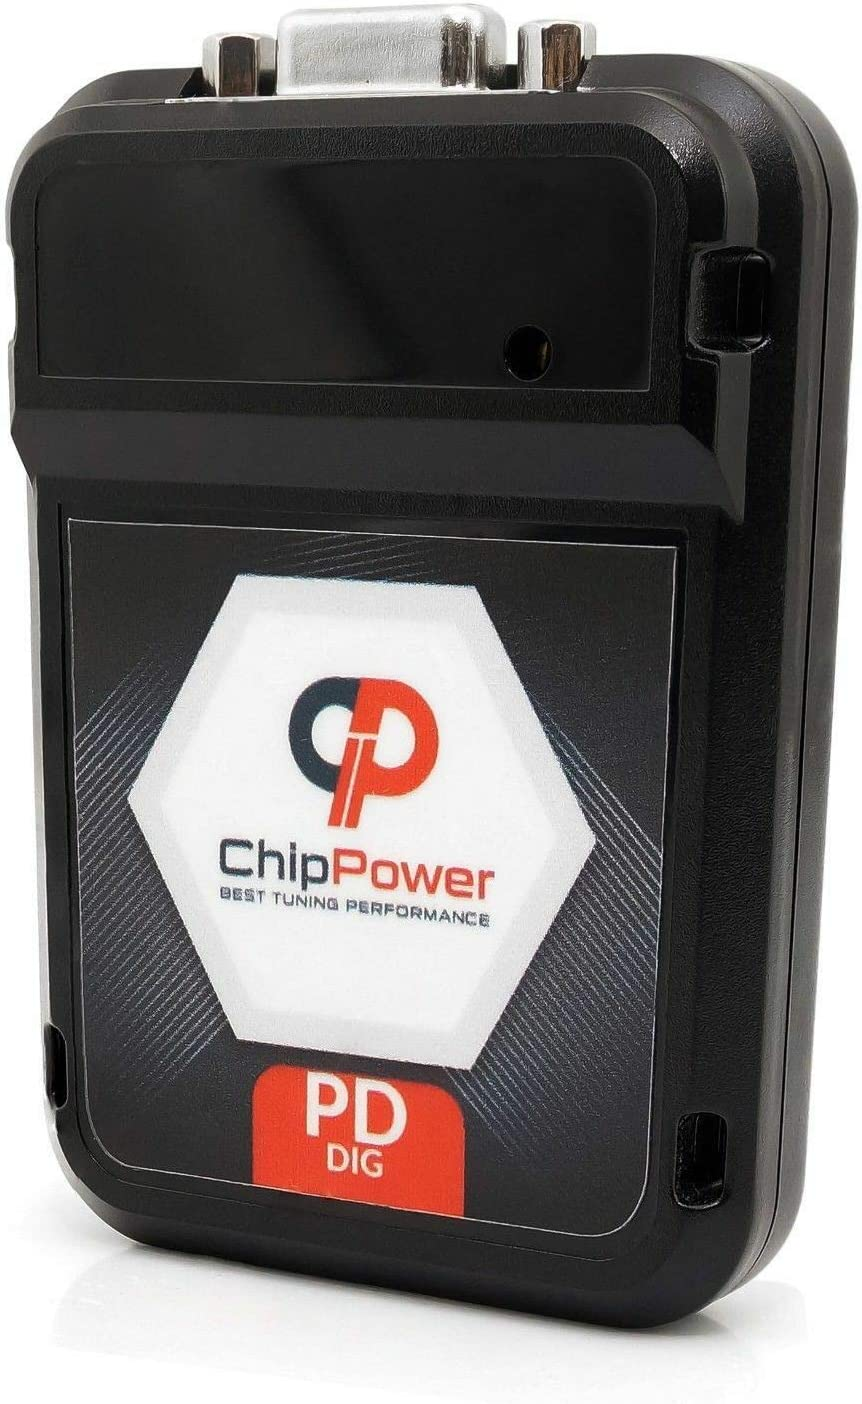 Boitier Additionnel Puce PDd pour A6 C5 1.9 TDI 130 CV Chip Tuning Diesel 4B